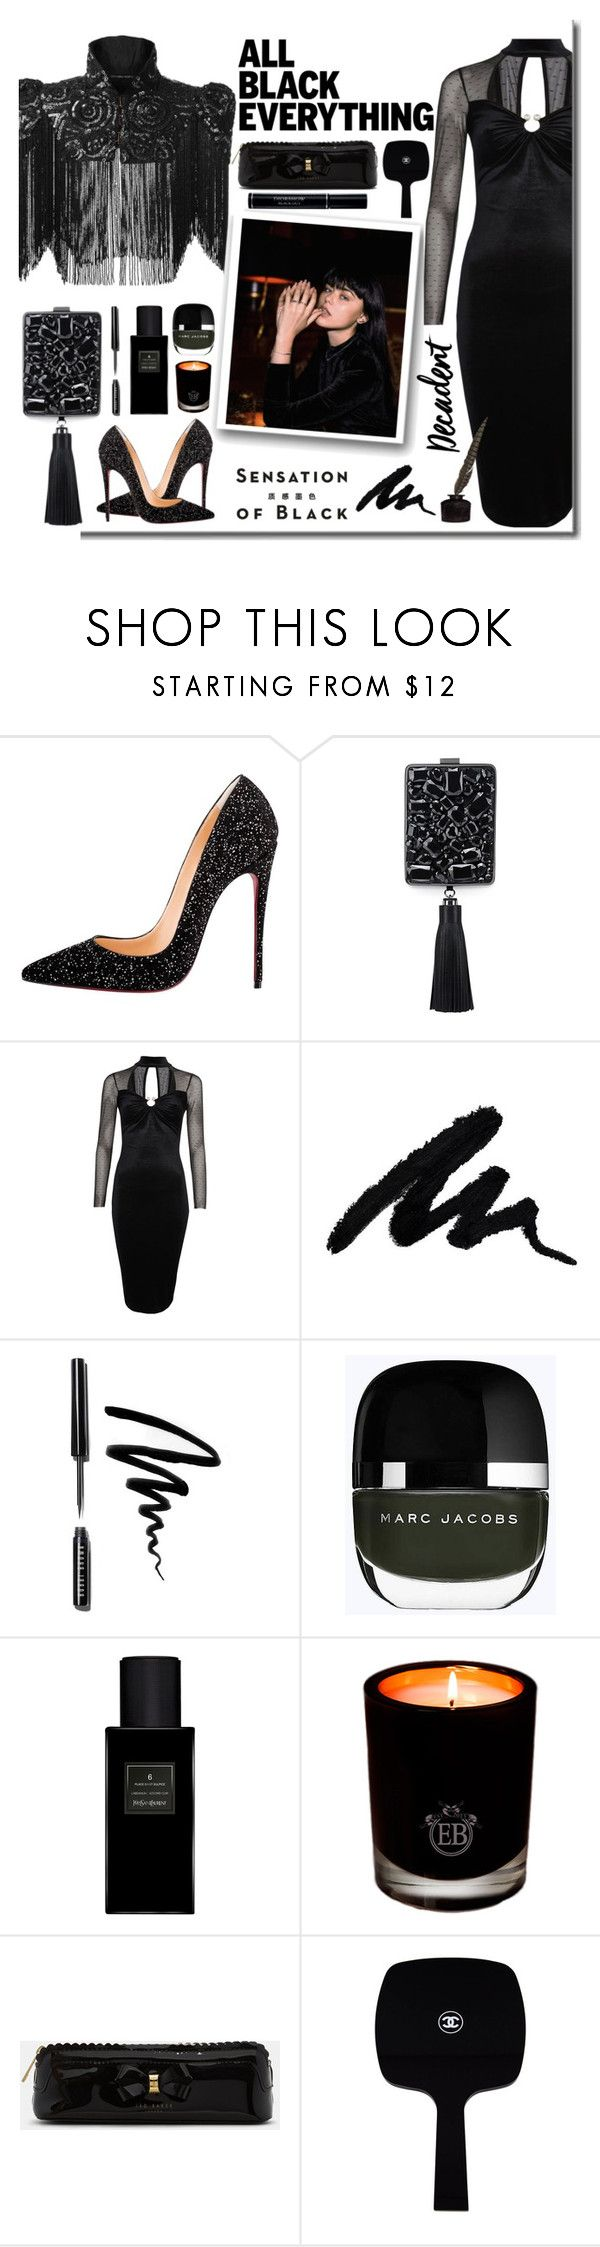 """All-Black Everything"" by johannamaria37 ❤ liked on Polyvore featuring Christian Louboutin, Tory Burch, TFNC, Vision, Bobbi Brown Cosmetics, Yves Saint Laurent, EB Florals, Ted Baker, Chanel and Christian Dior"